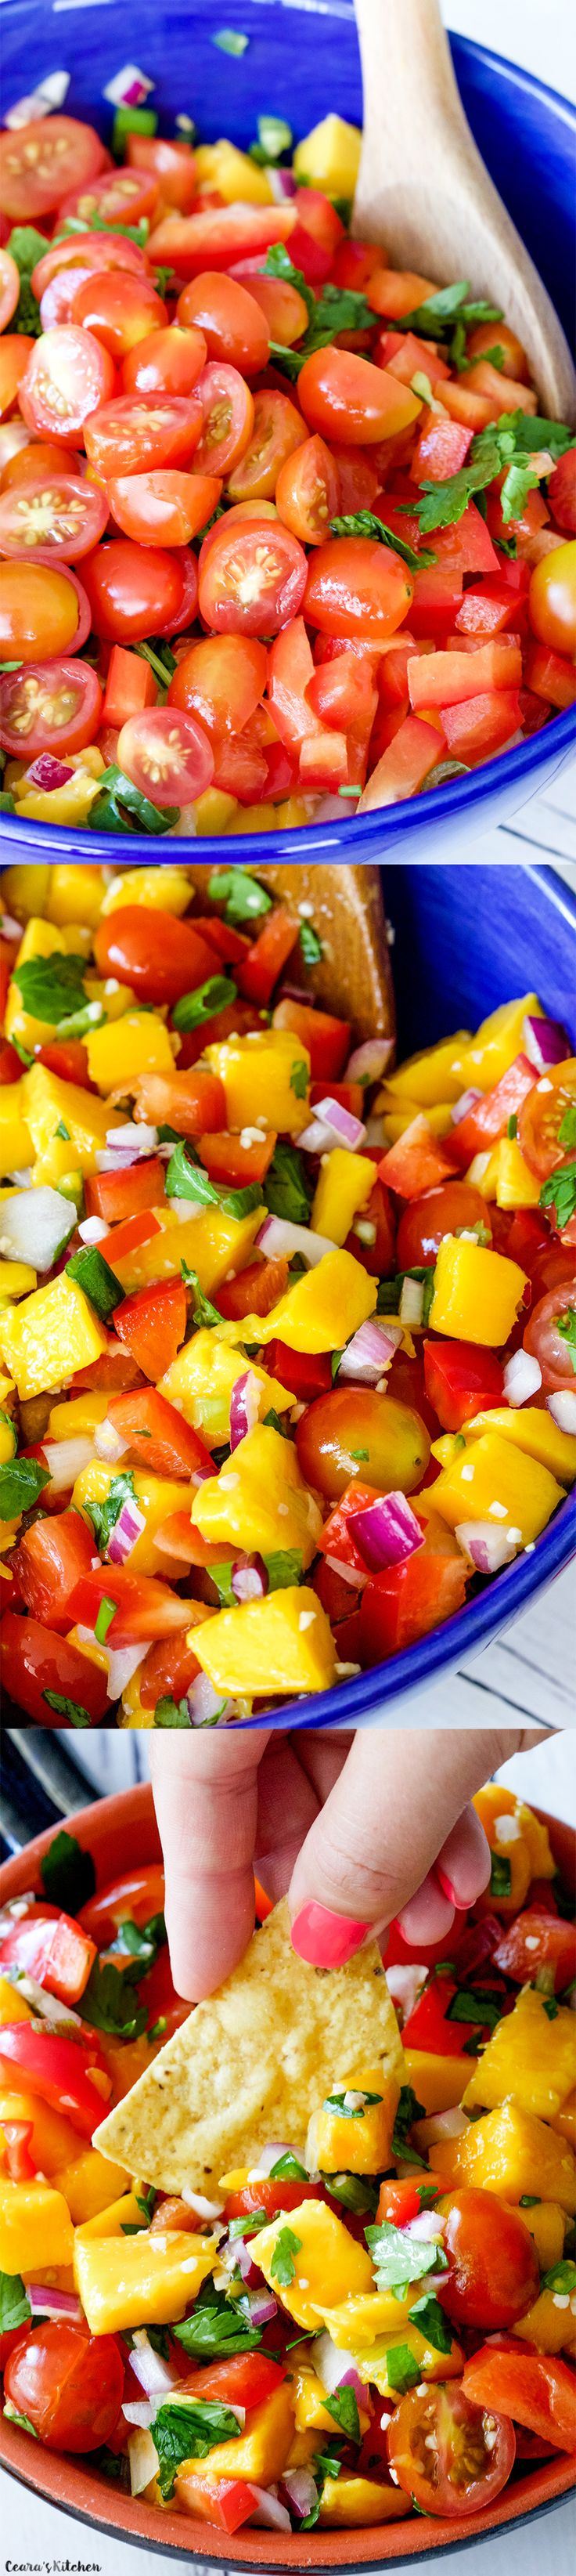 Vibrant and flavorful Mango Salsa that doubles as a colourful #Summer salad! #Healthy #Salad #Vegan #GlutenFree